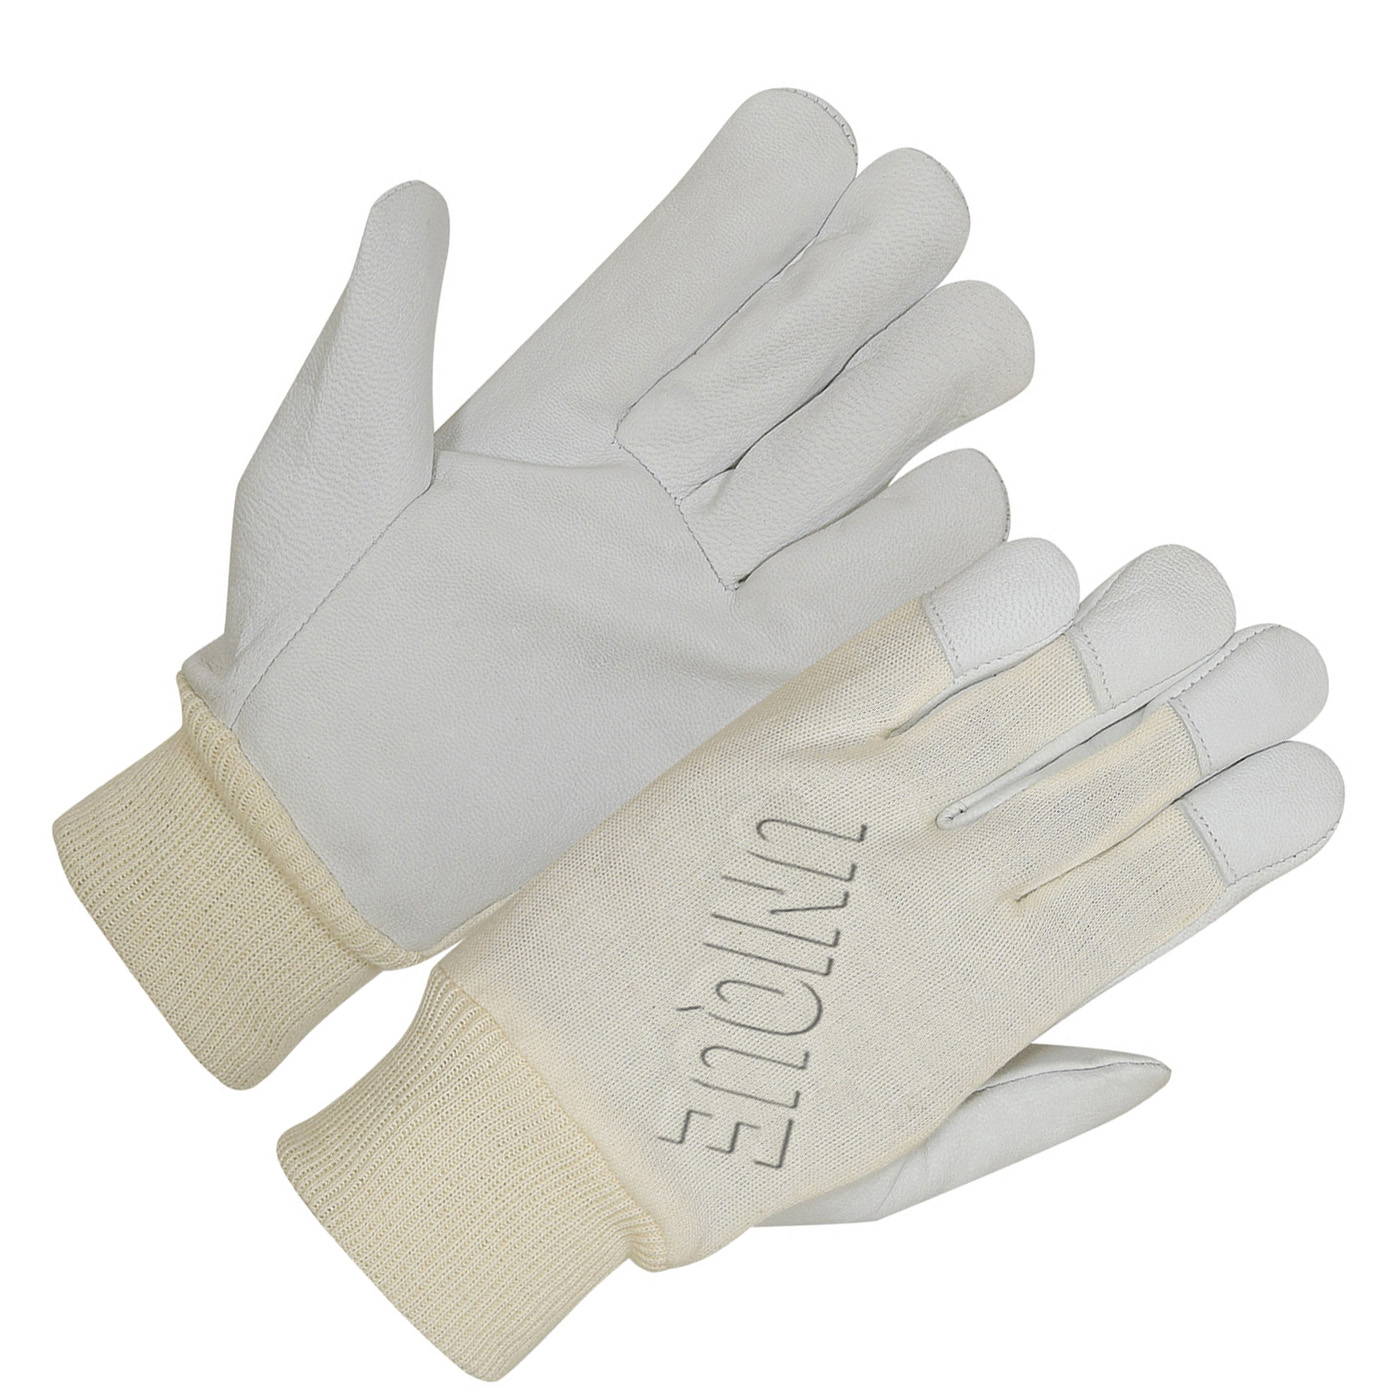 GOATSKIN LEATHER GLOVES WITH INTERLOCK